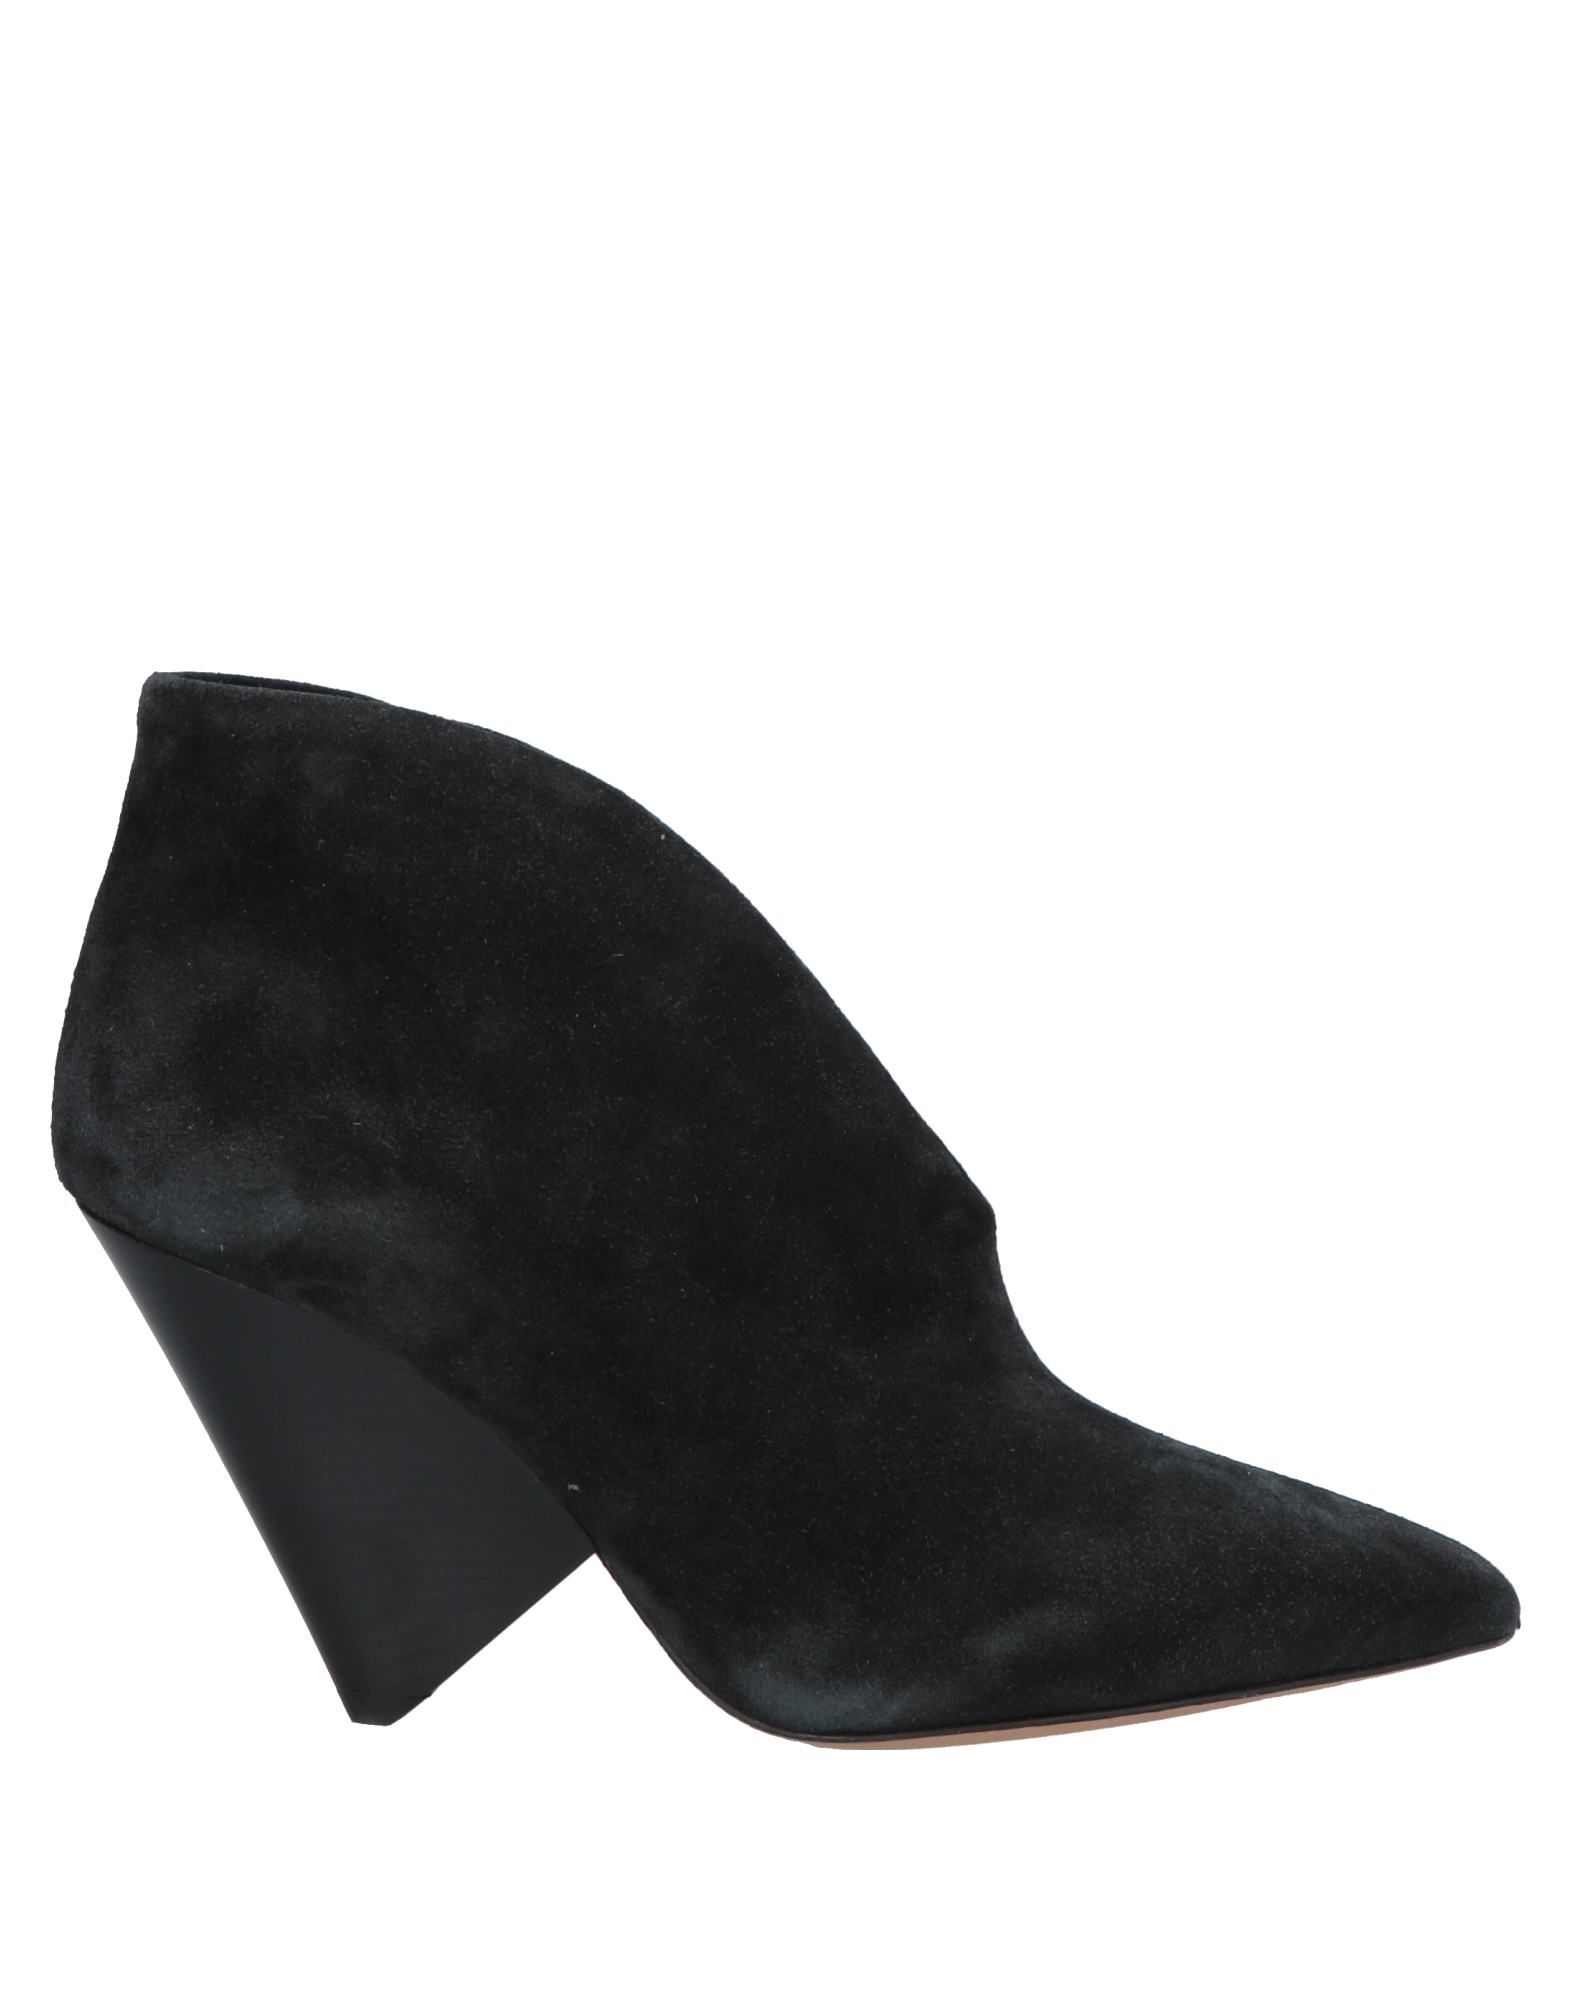 ISABEL MARANT Booties. suede effect, no appliqués, solid color, narrow toeline, cone heel, leather lining, leather sole, contains non-textile parts of animal origin, small sized. Soft Leather